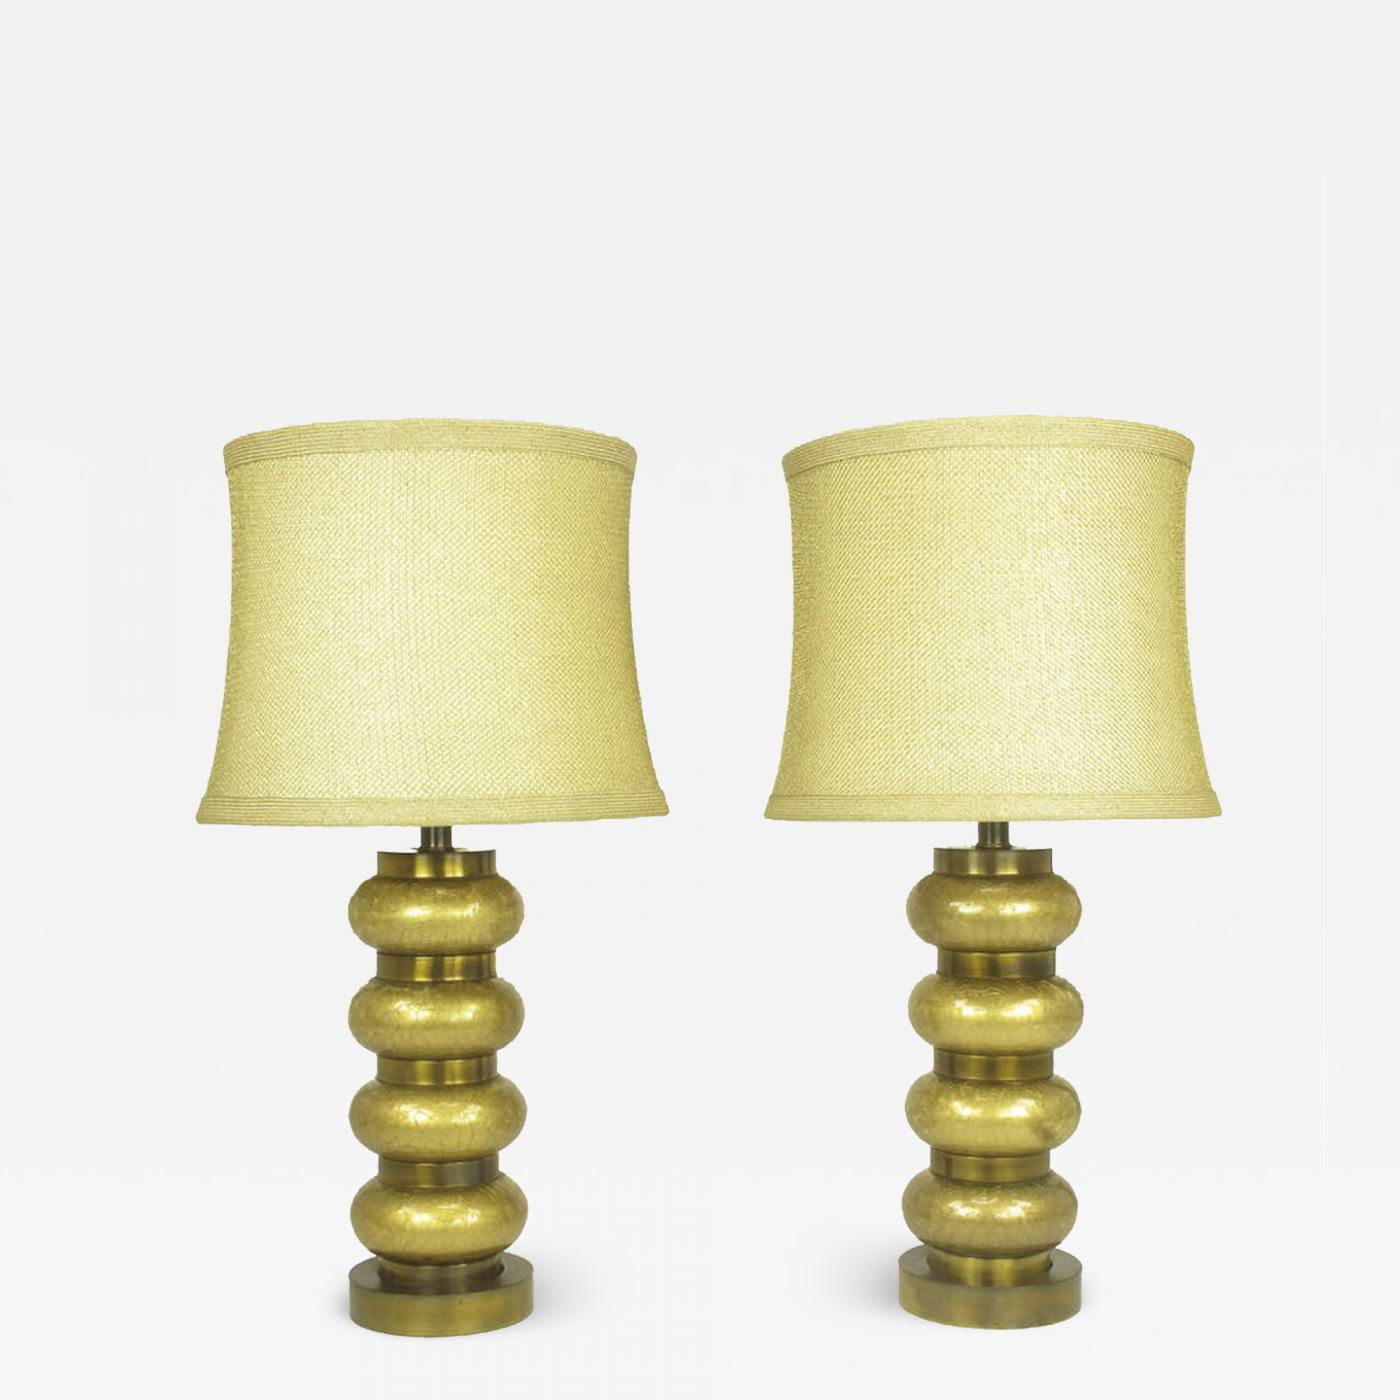 Glass Crackle Lamp Paul Hanson Pair Of Paul Hanson Reverse Gilt Crackle Glass And Brass Table Lamps